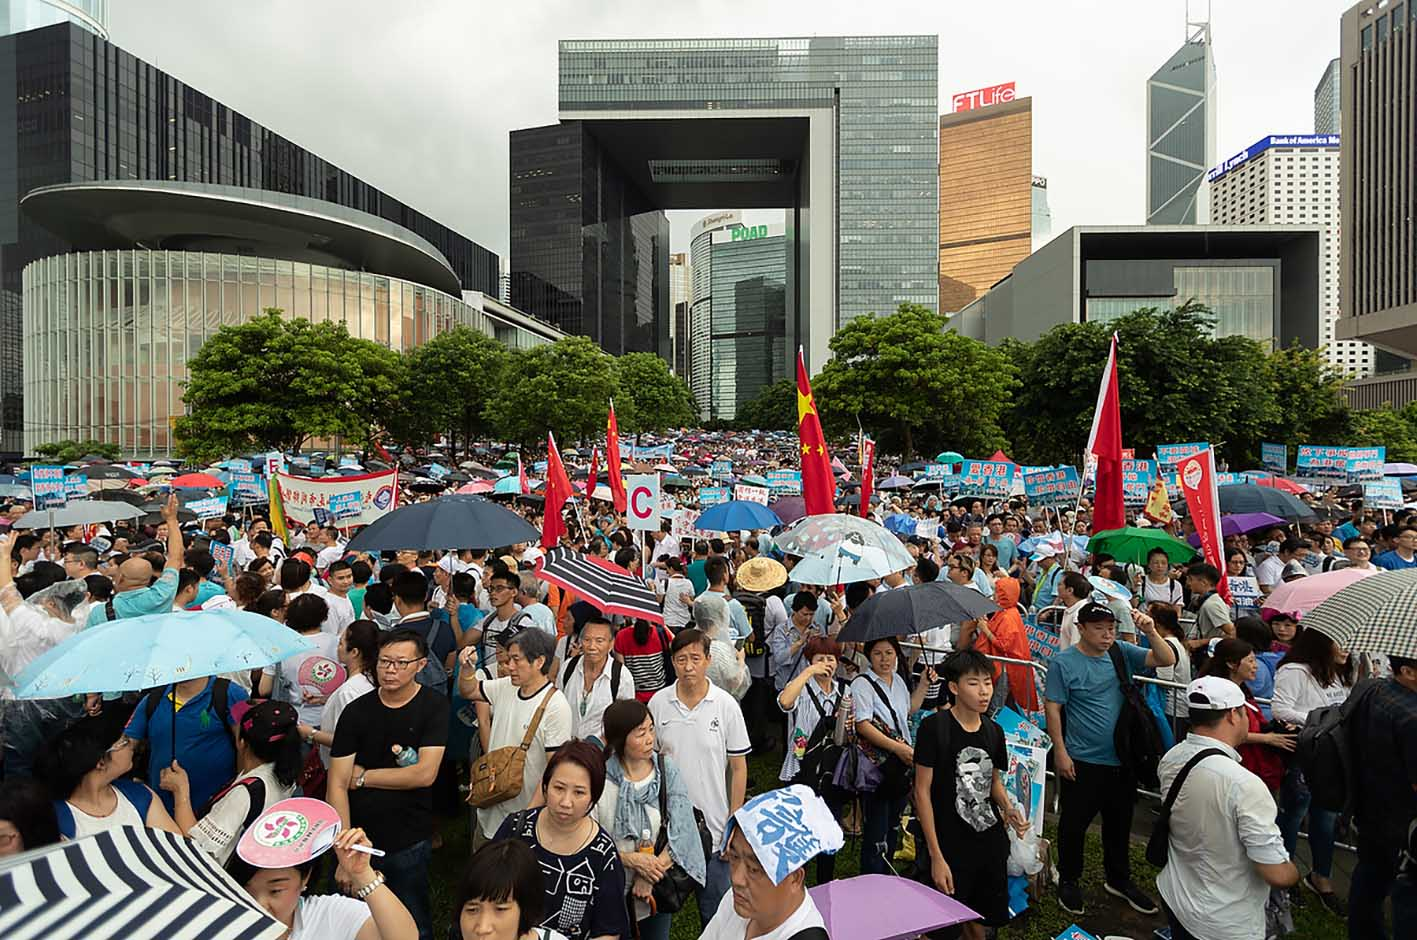 July 20, 2019: Pro-government demonstration at LegCo